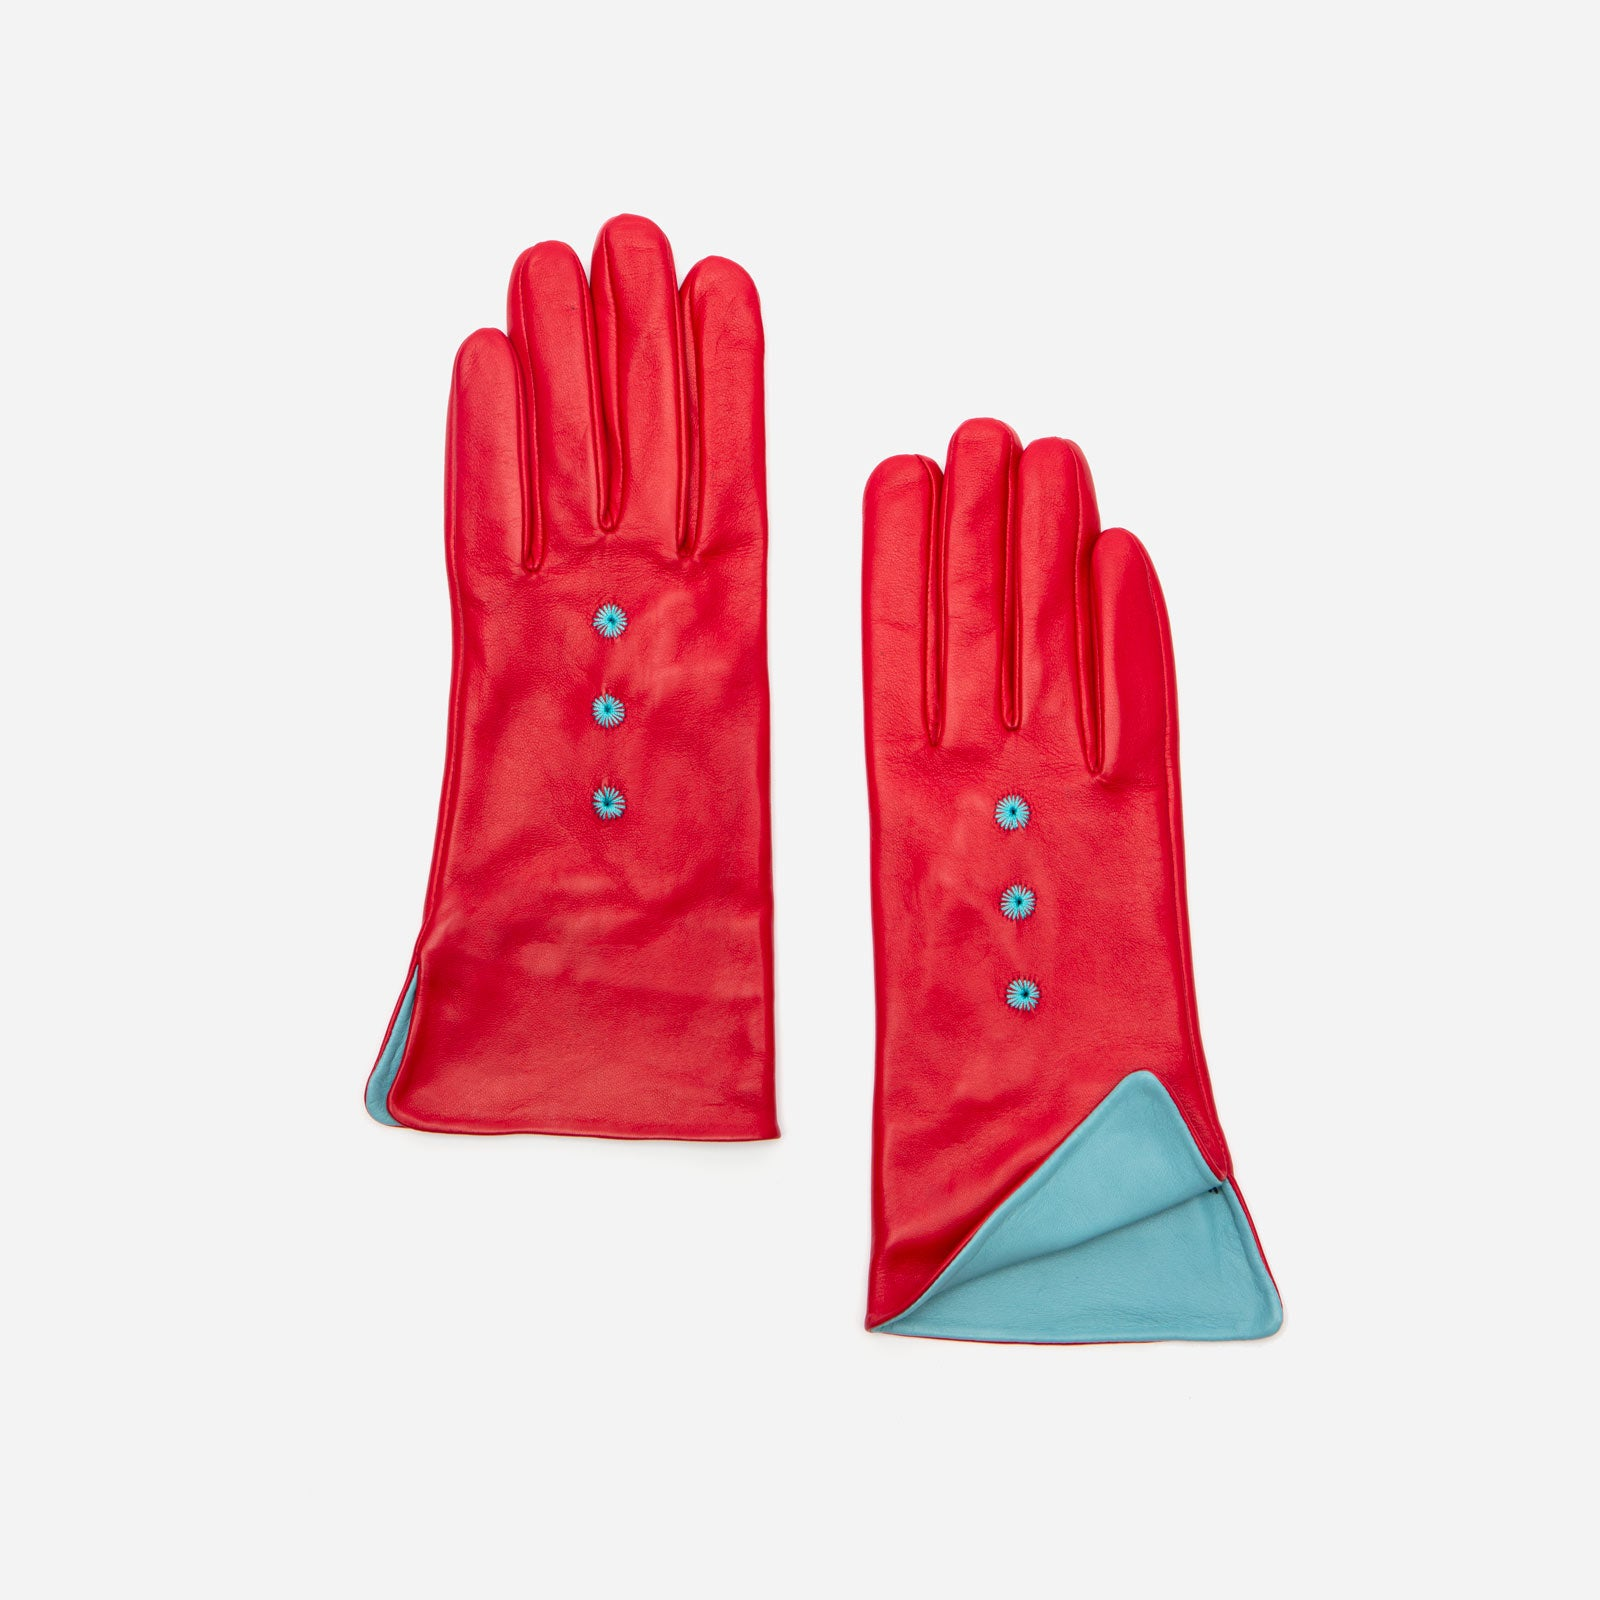 Luisa Asterisk Glove Leather Red - Frances Valentine